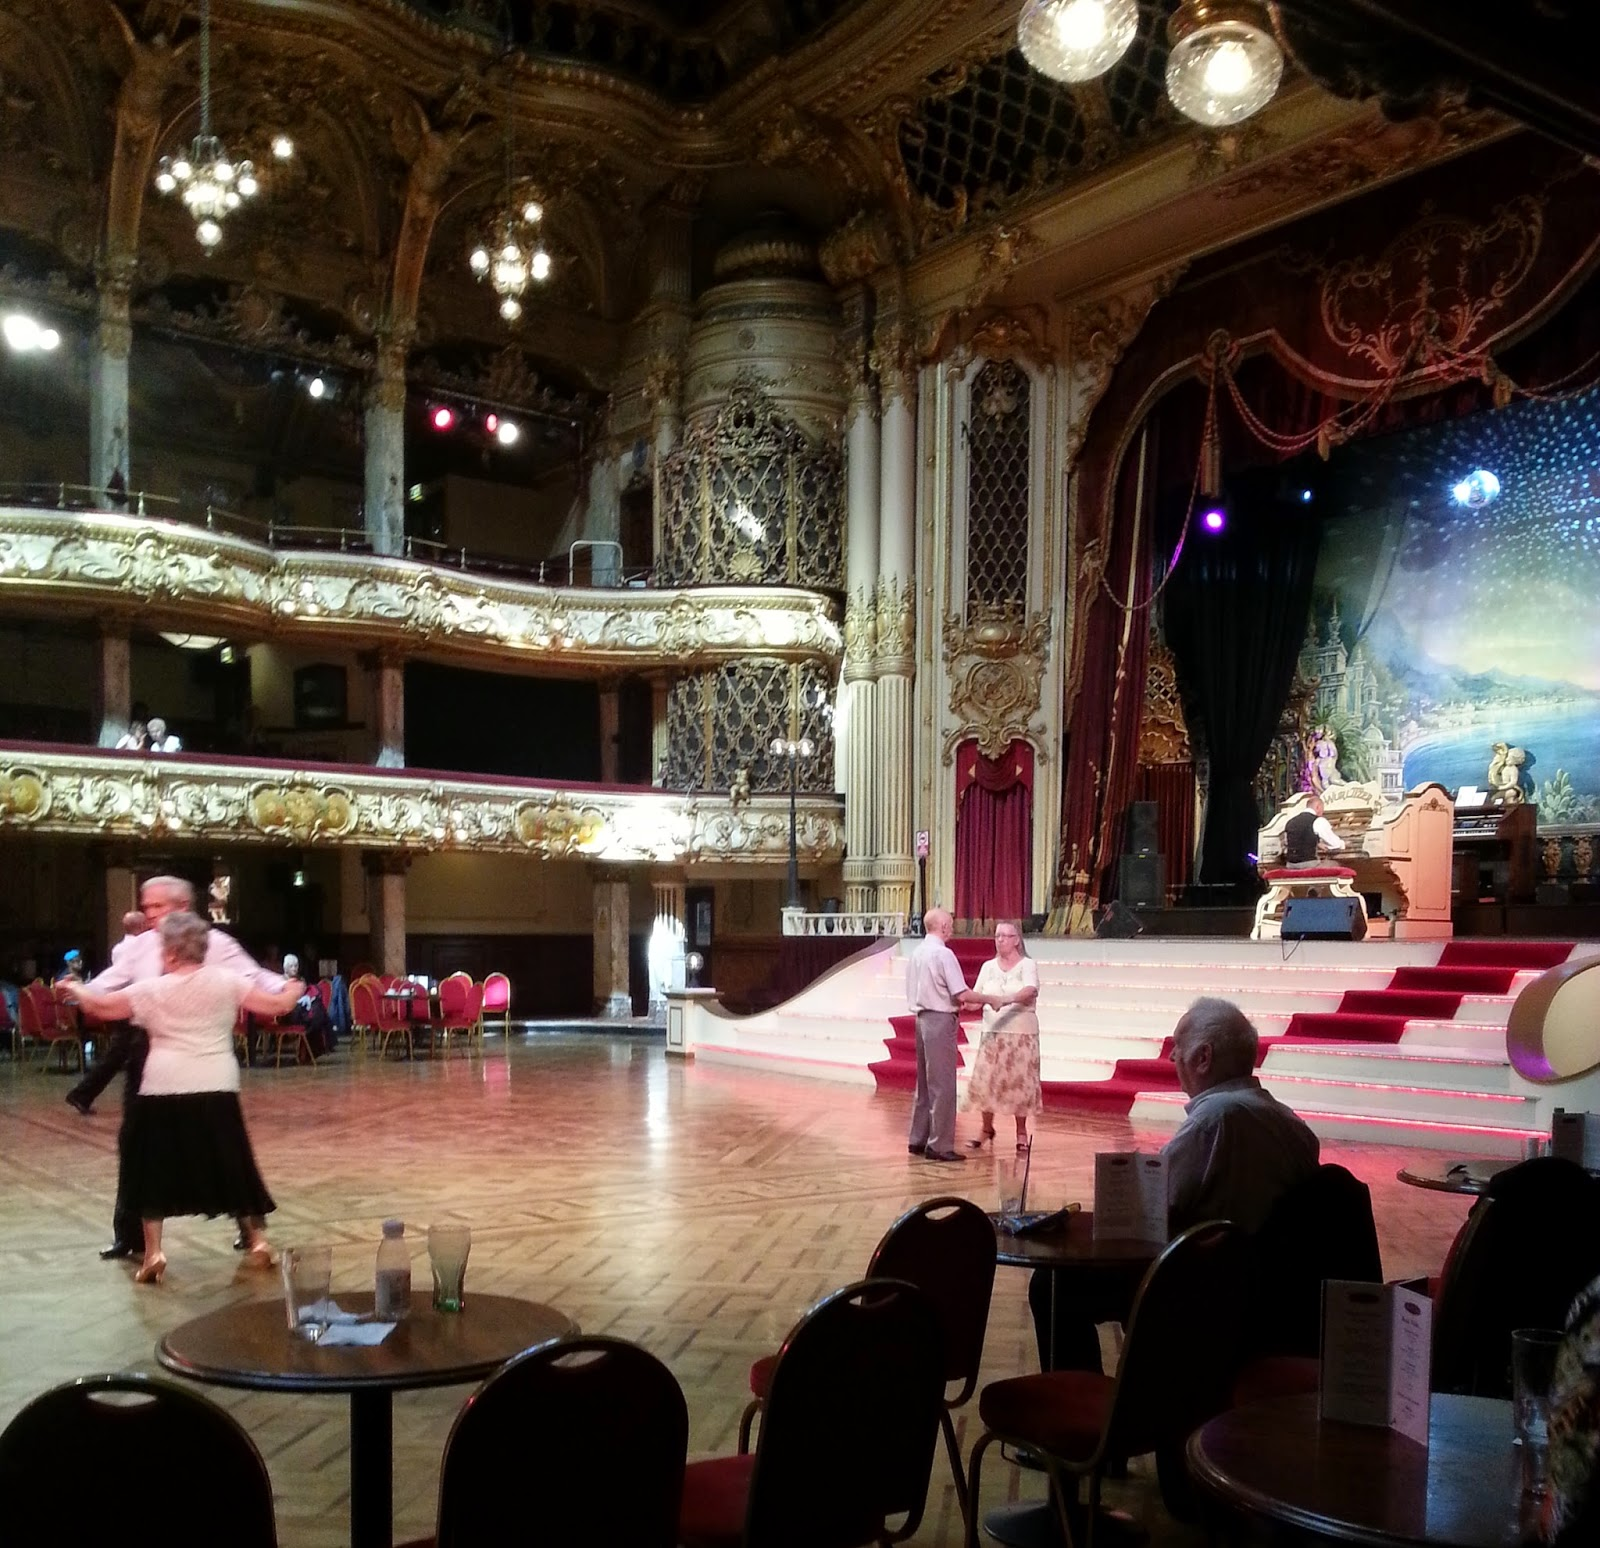 blackpool tower ballroom wallpapers - photo #20